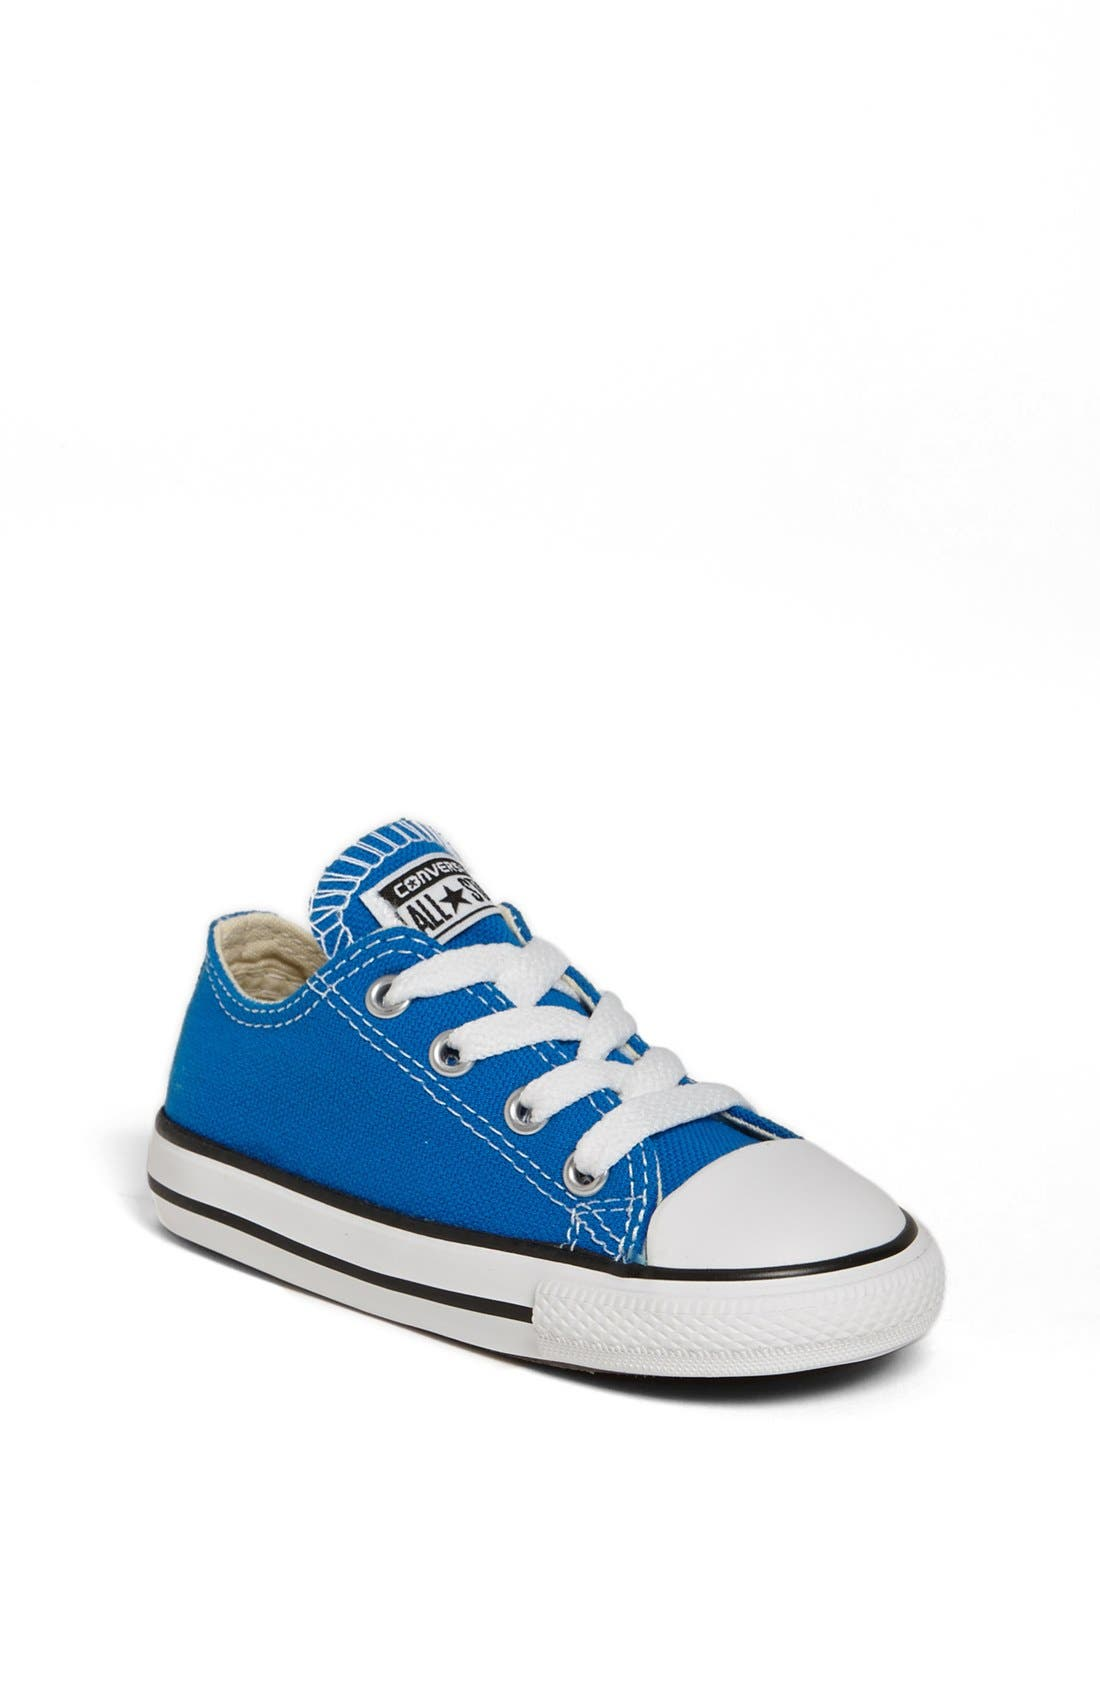 Alternate Image 1 Selected - Converse Chuck Taylor® All Star® Low Top Sneaker (Baby, Walker & Toddler)